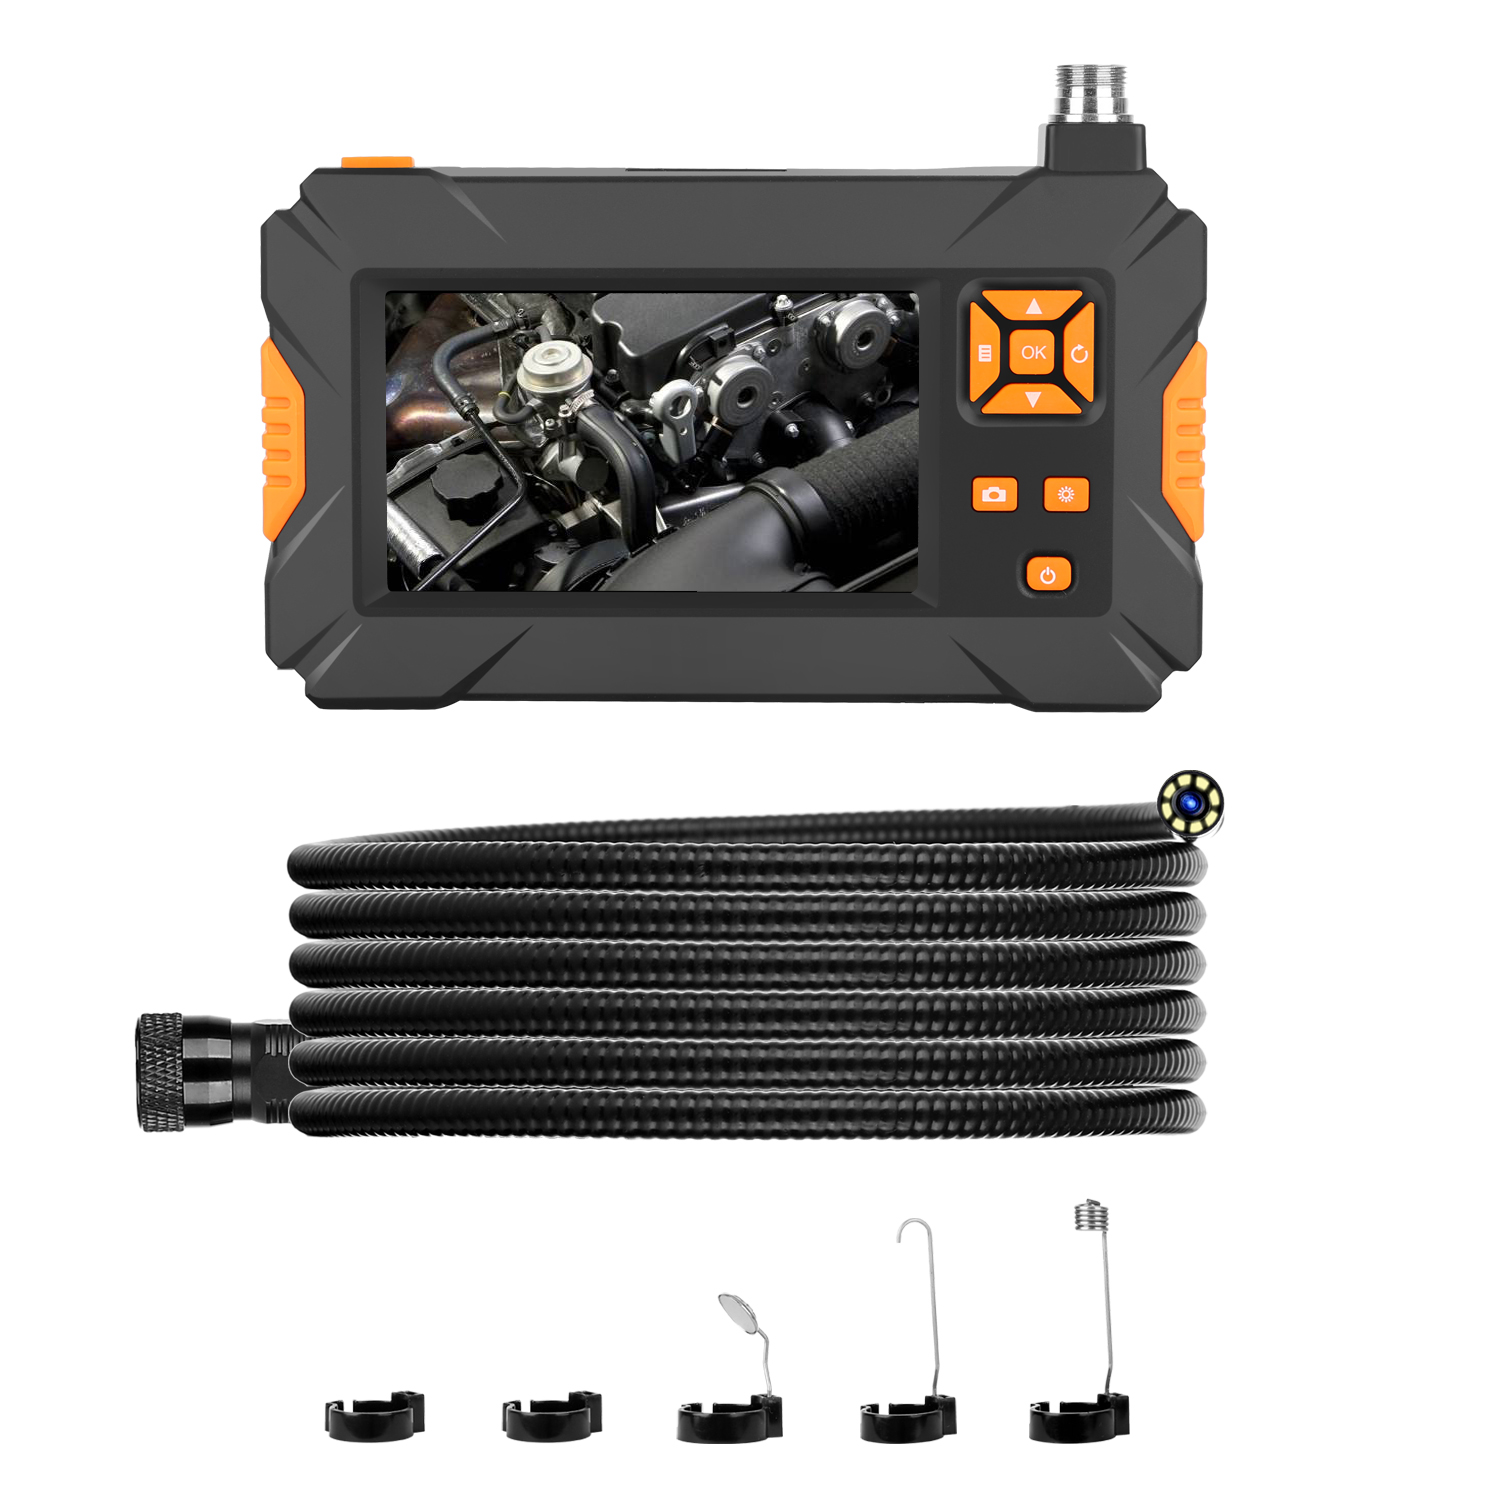 4.3-inch Color LCD HD Handheld Screen Endoscope 1080P P30 Orange Configurable Snake Tube Hard Wire Industrial Tube Endoscope